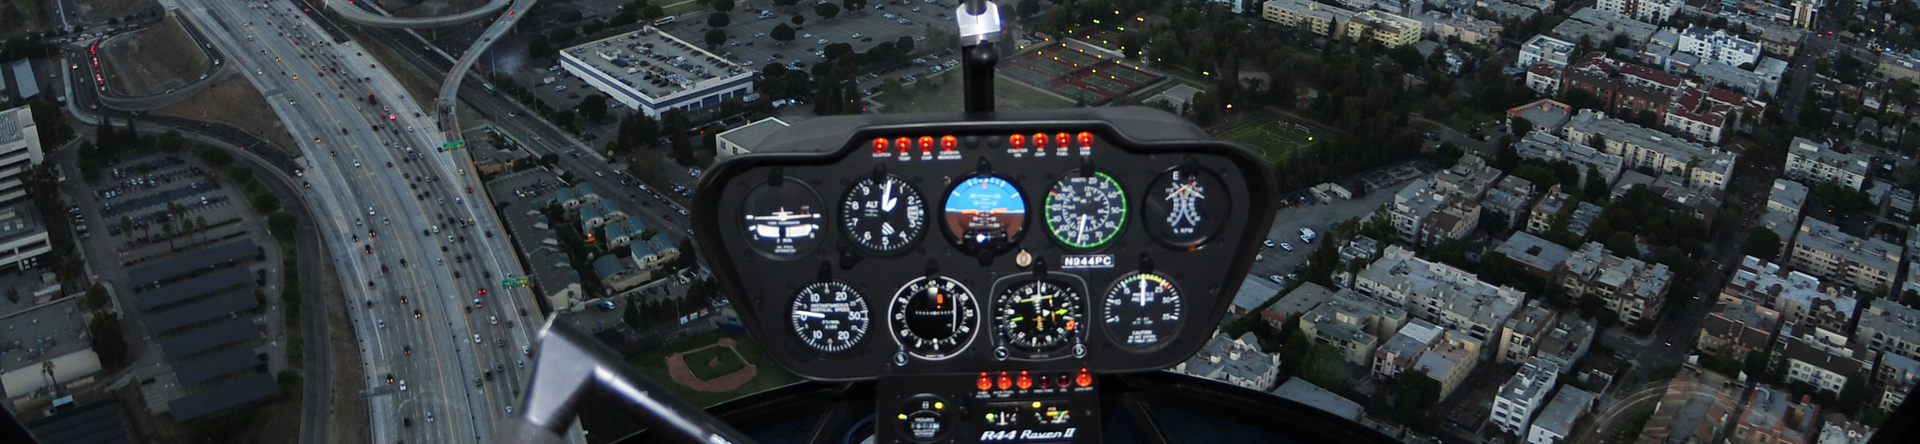 Helicopter Instrument Instructor or Certified Flight Instructor